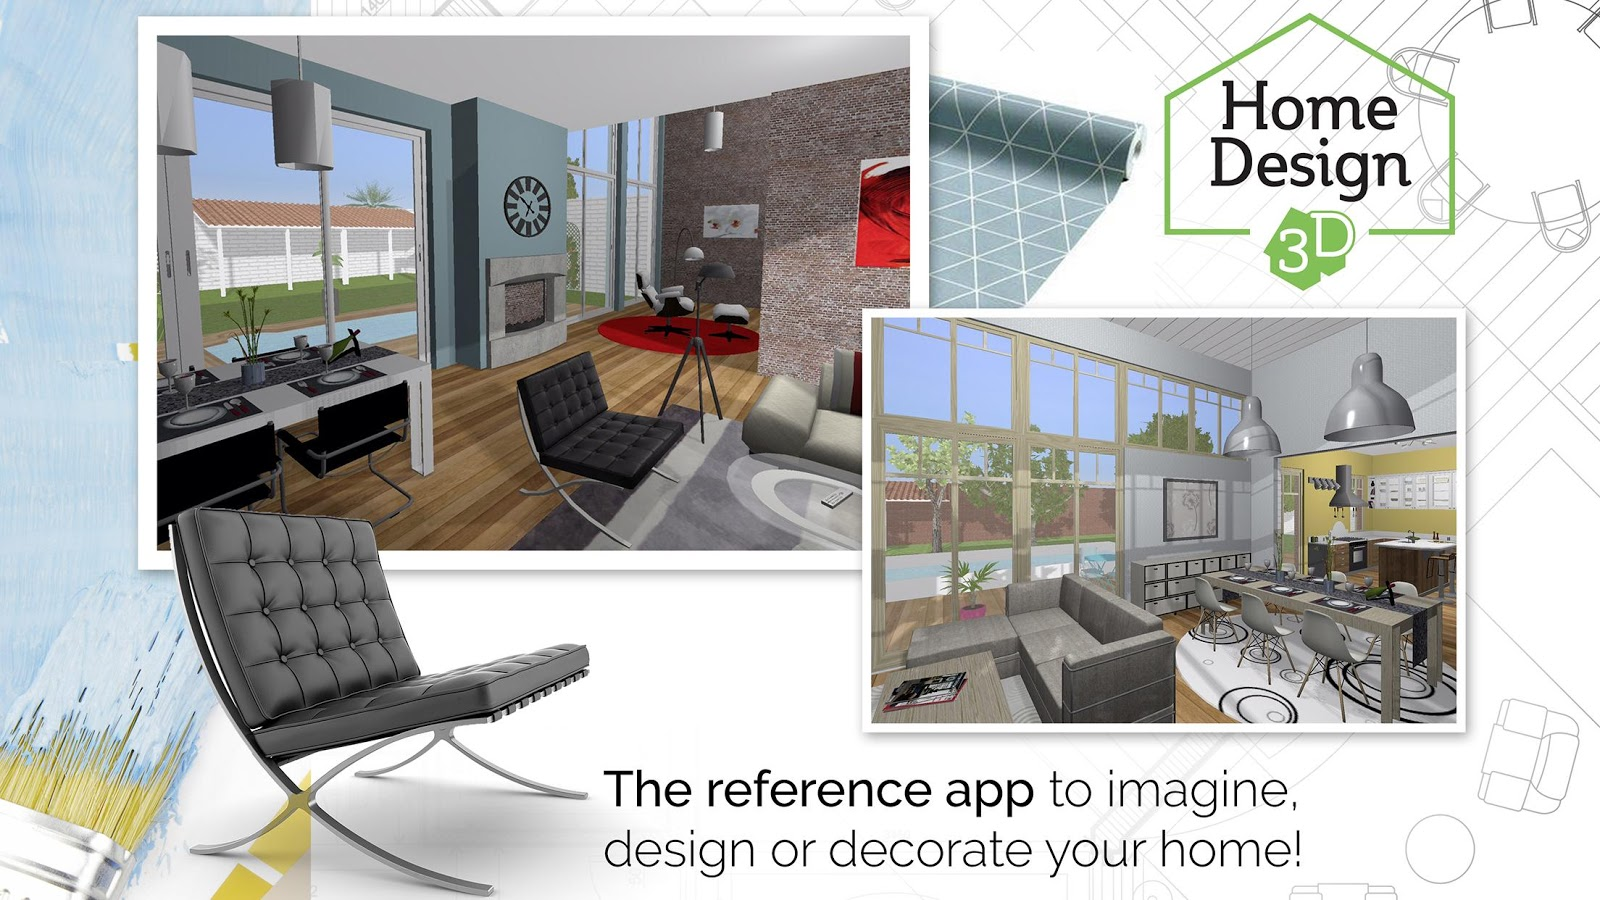 Home design 3d freemium android google play for House interior design event